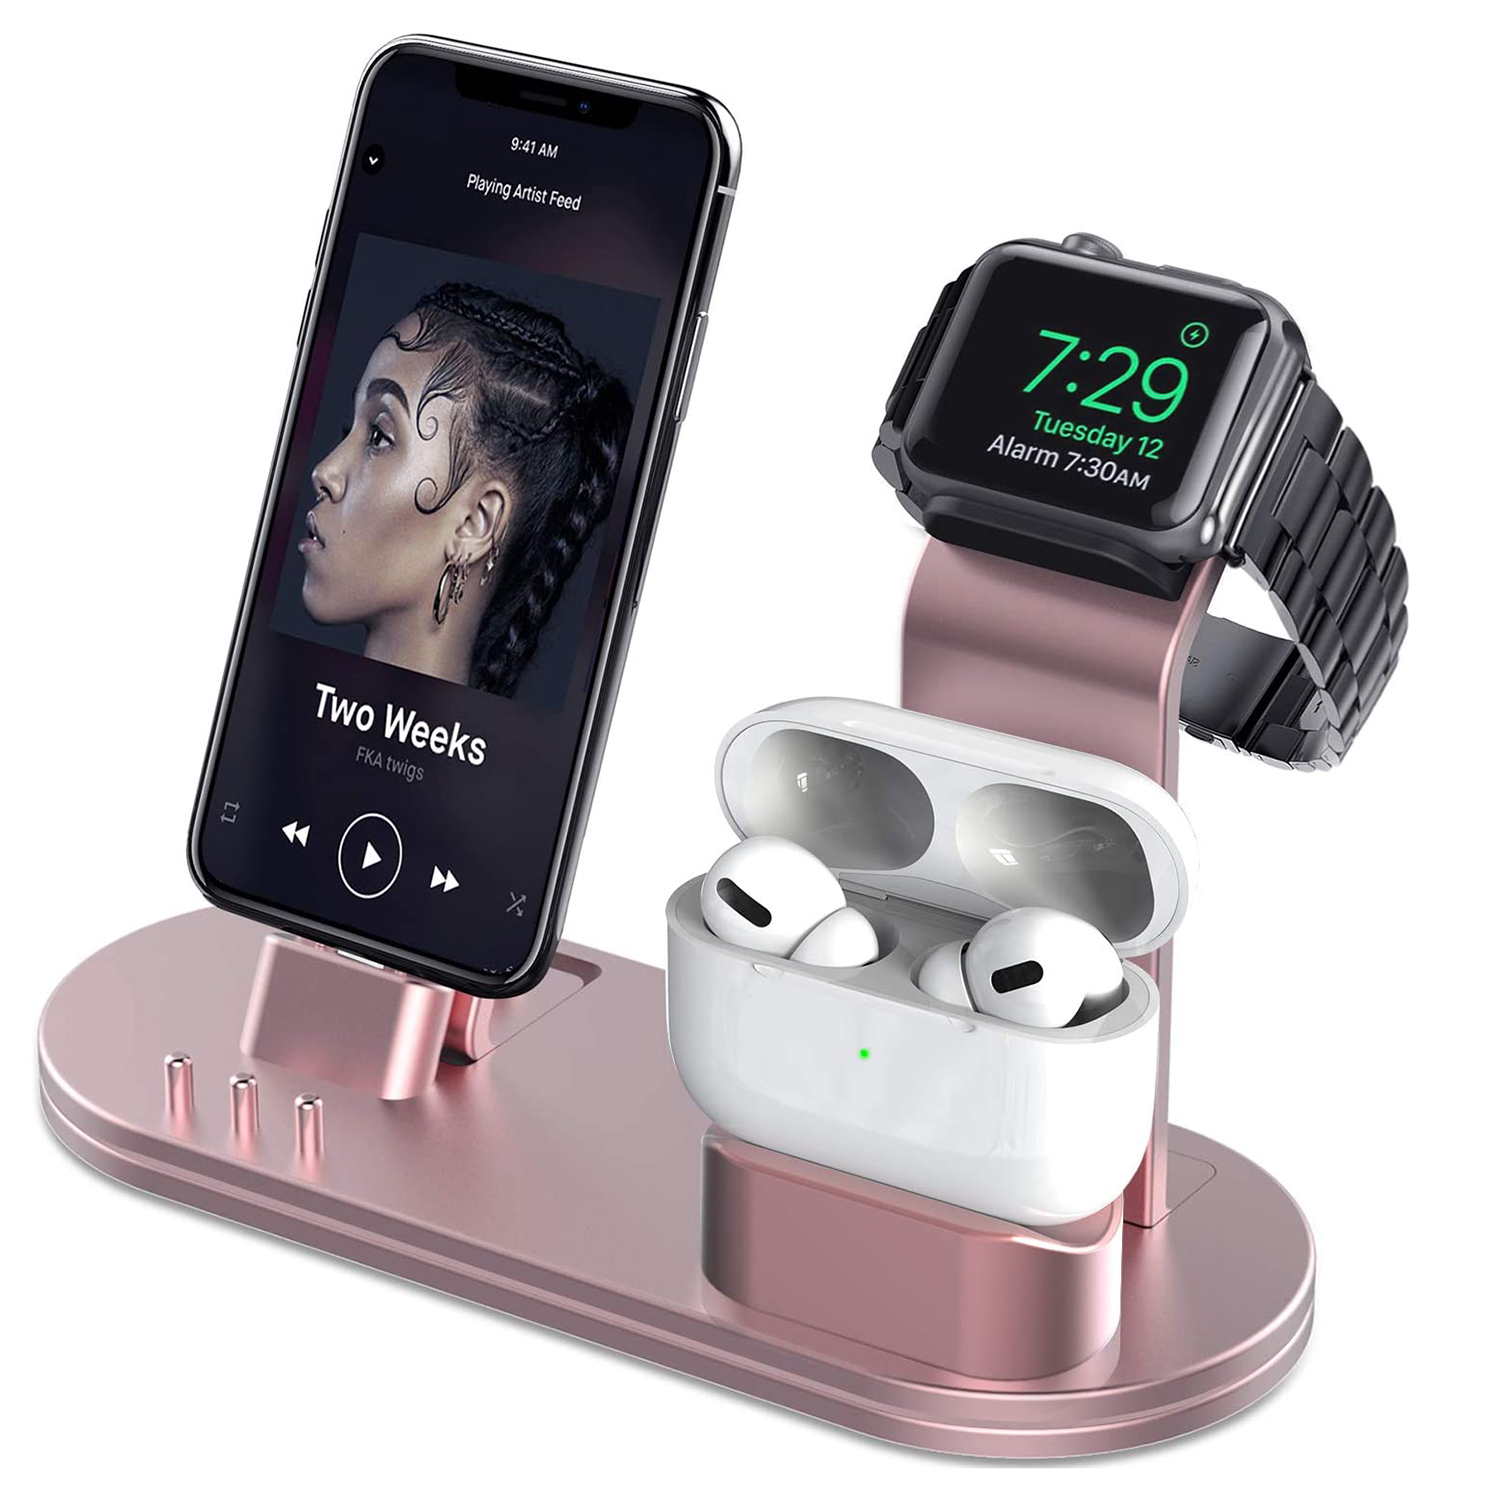 OLEBR Charging Stand Compatible with AirPods, iWatch Series